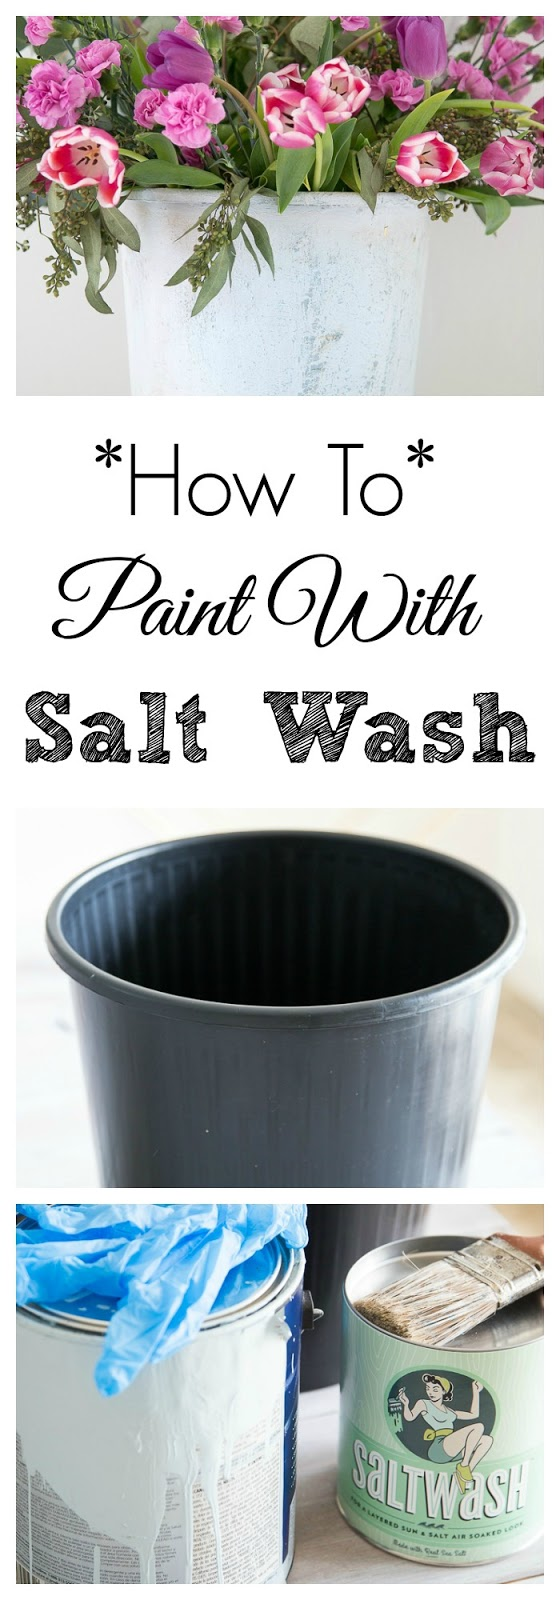 How To Use Saltwash Paint Additive For Upcycling